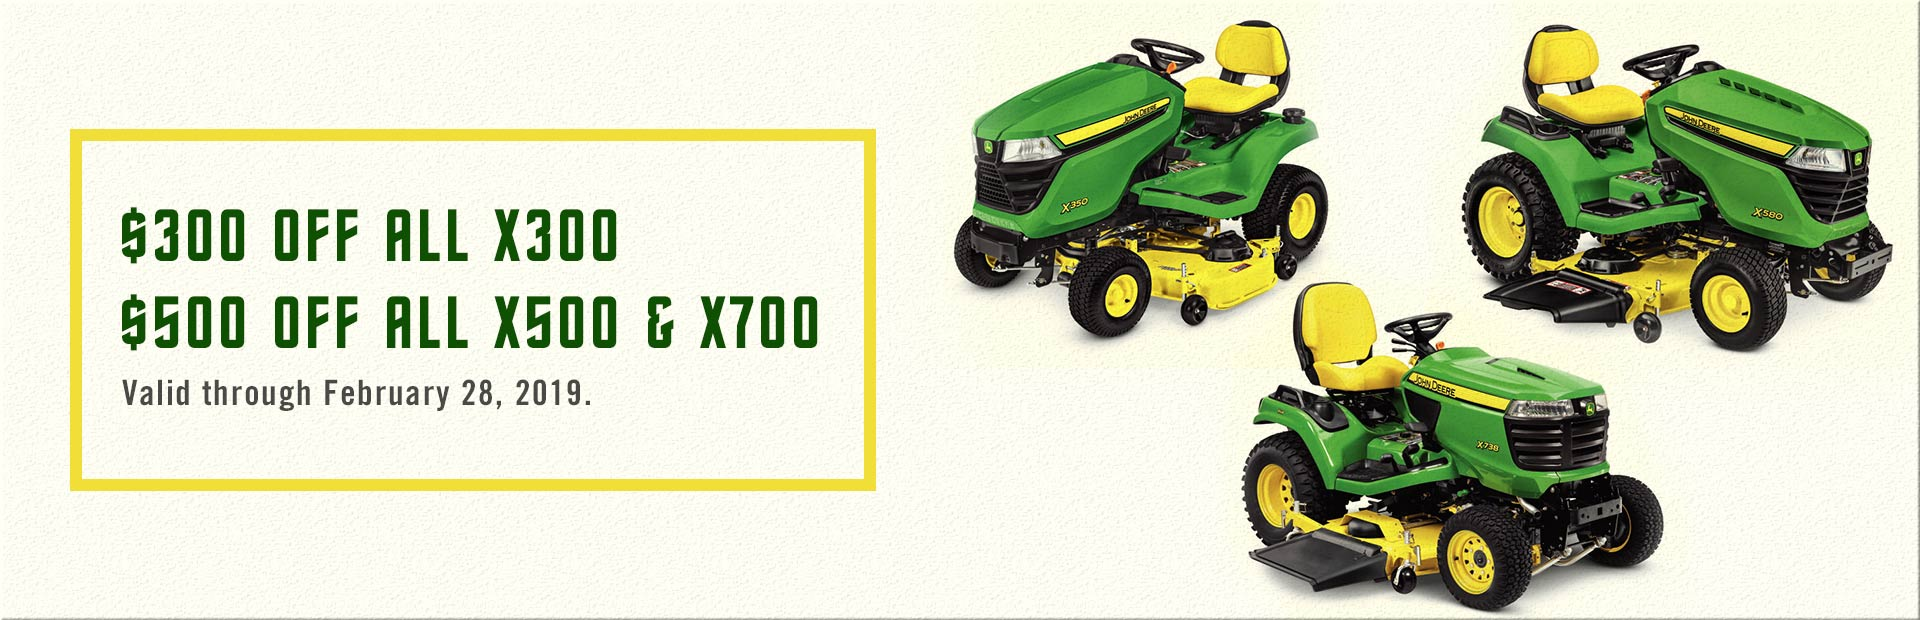 Get $300 off all John Deere X300 models and $500 off all X500 and X700 models through February 28, 2